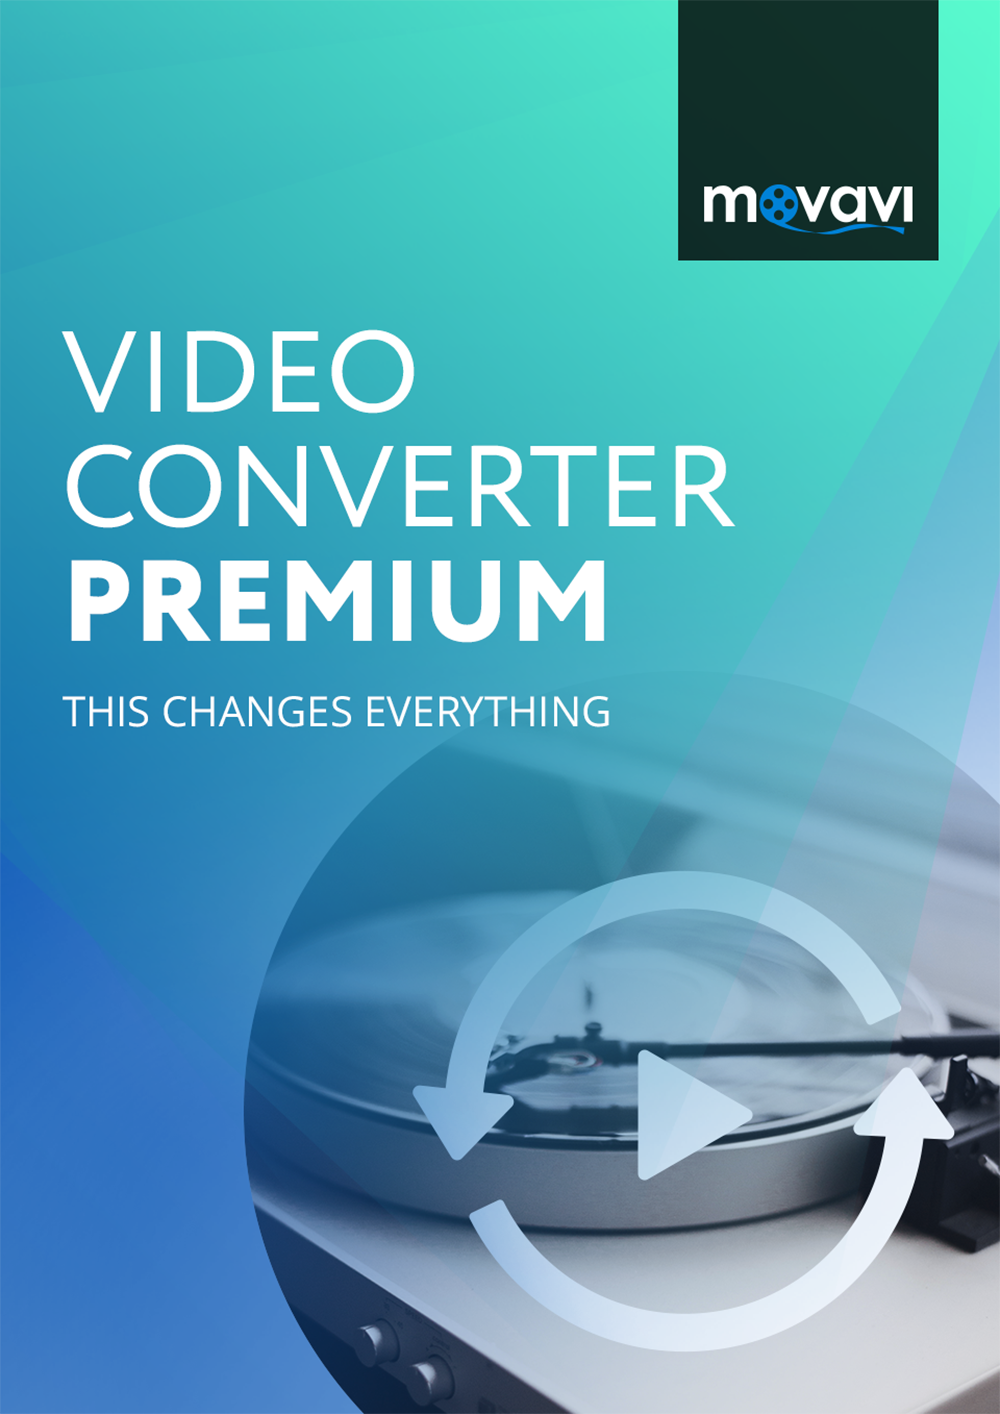 Movavi Video Converter Premium 18 Persönliche Lizenz [Download] -